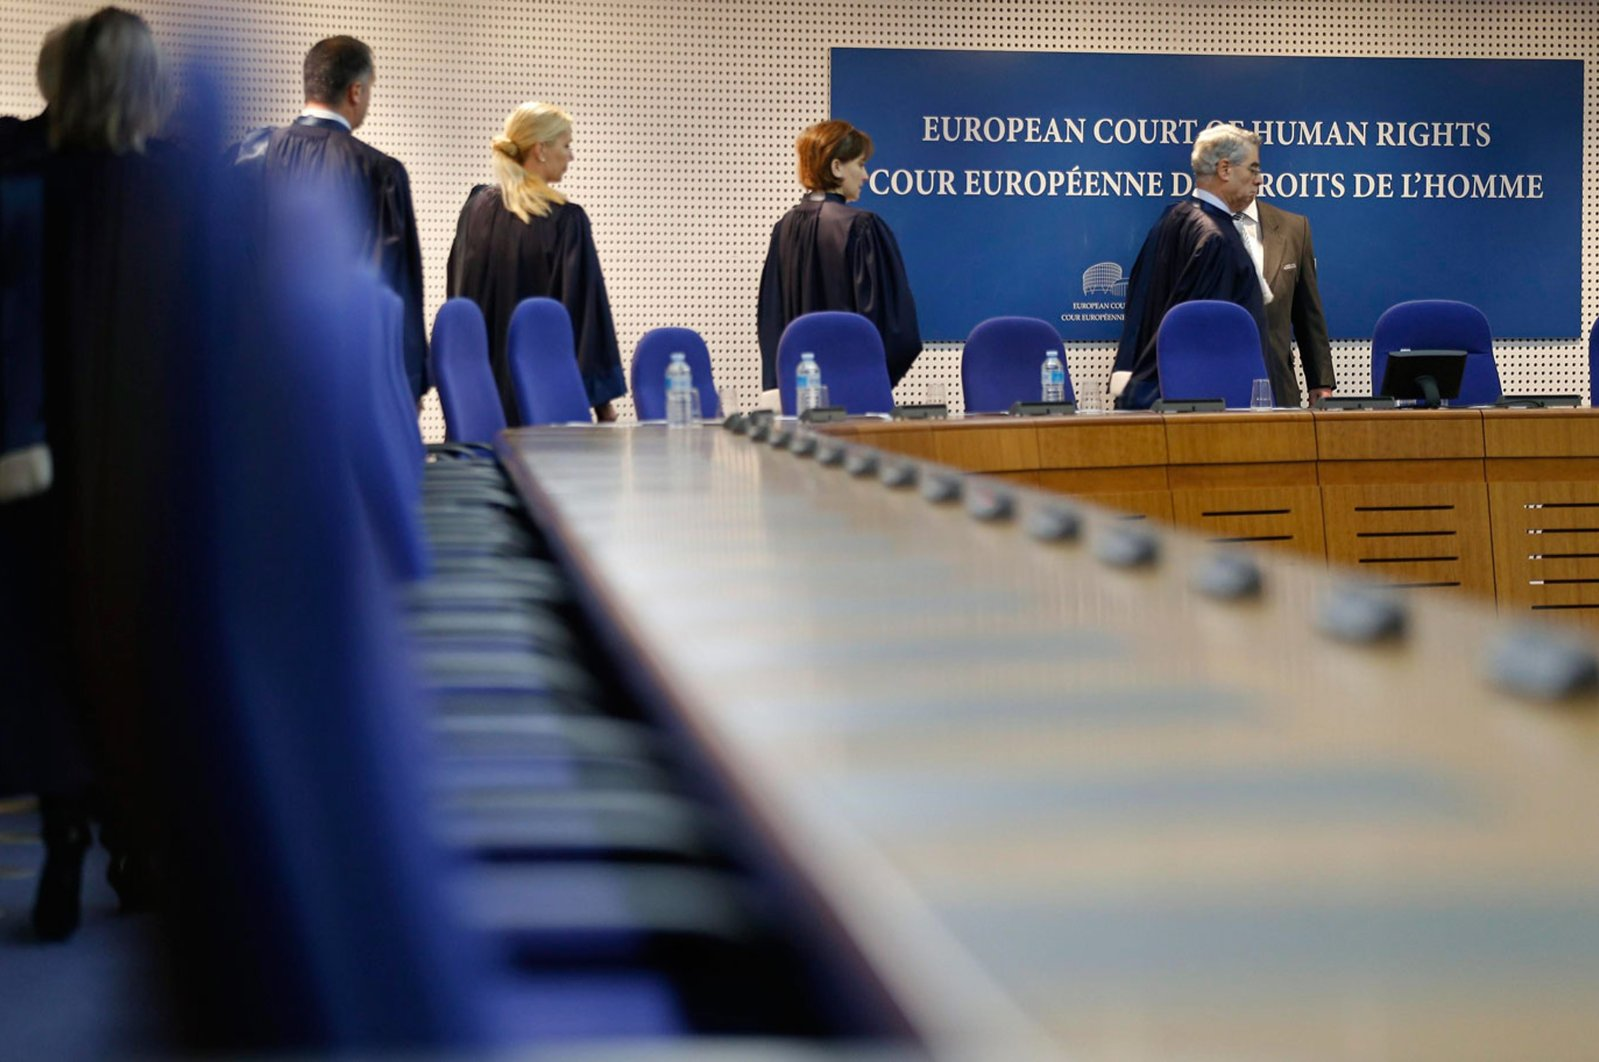 Judges of the European Court of Human Rights enter the hearing room of the court in Strasbourg, Dec. 3, 2013.